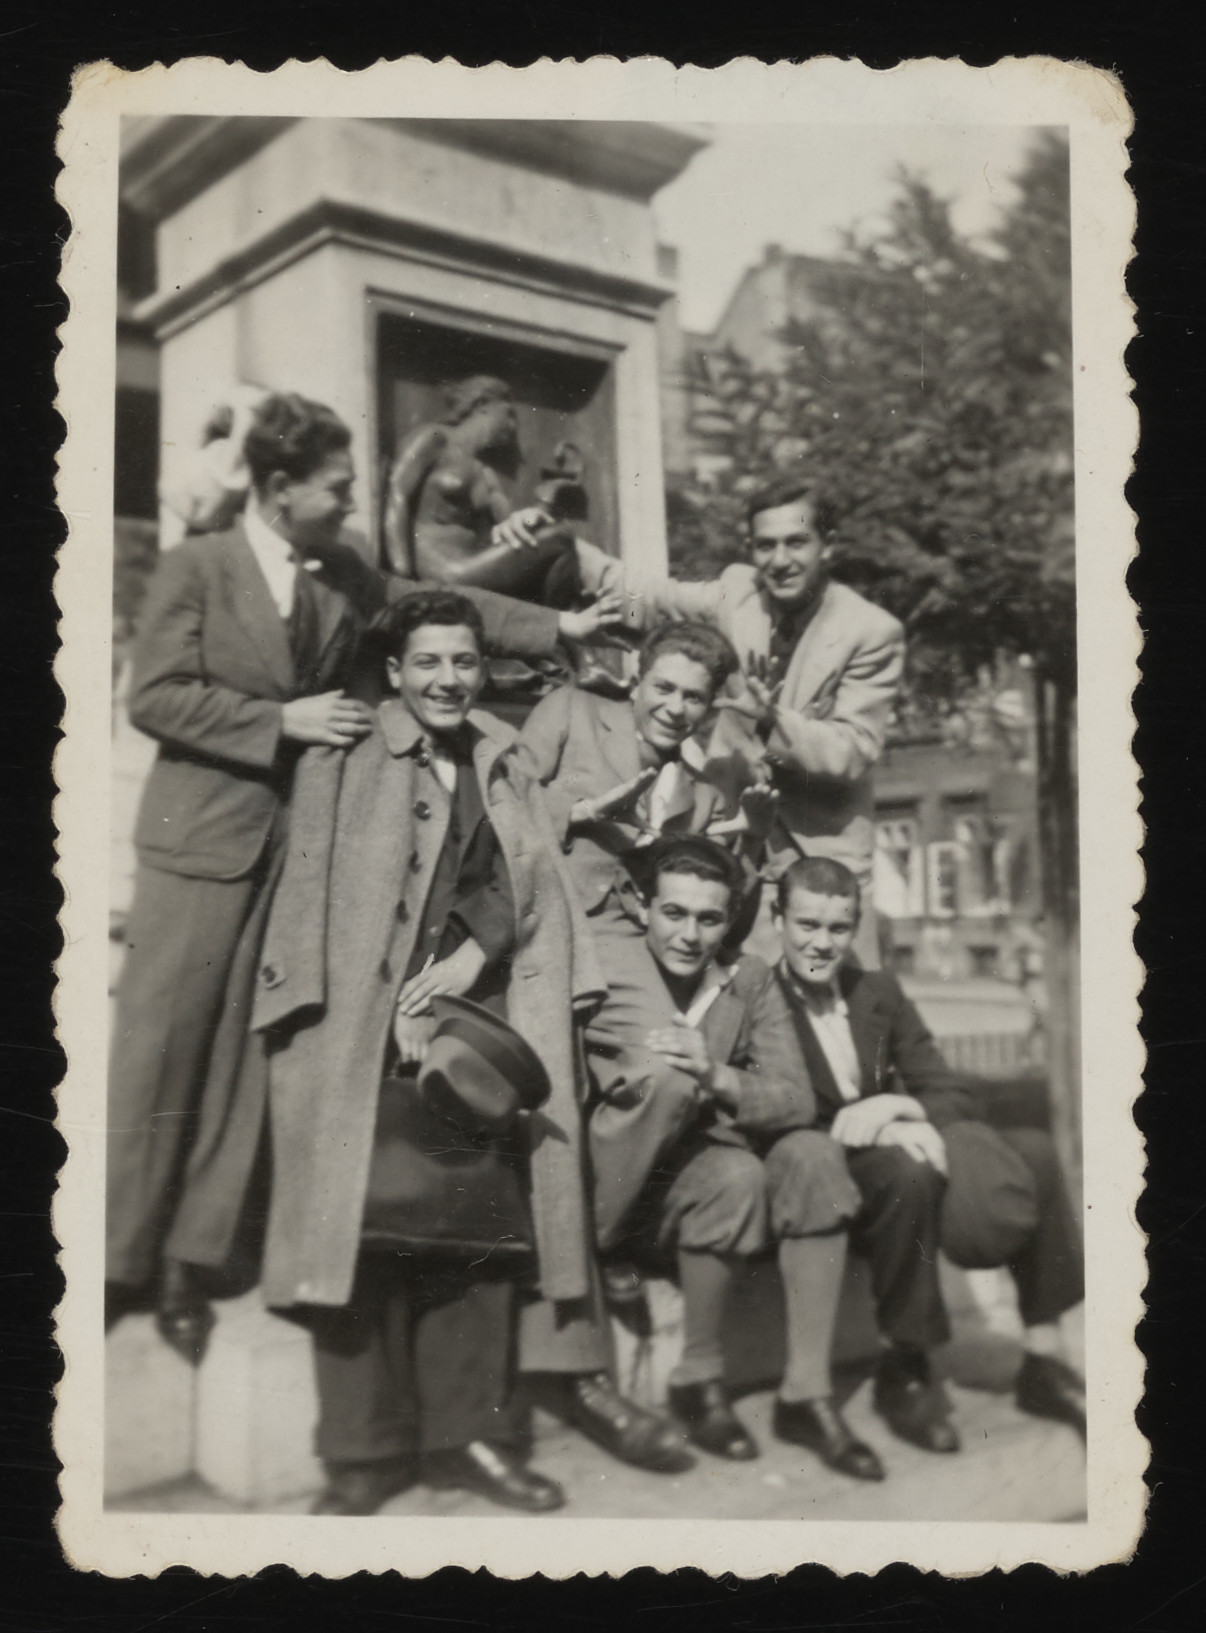 A group of Hungarian rabbinical students pose next to a statue in a public square in Budapest.  Among those pictured is Paul Ornstein (seated on the left).